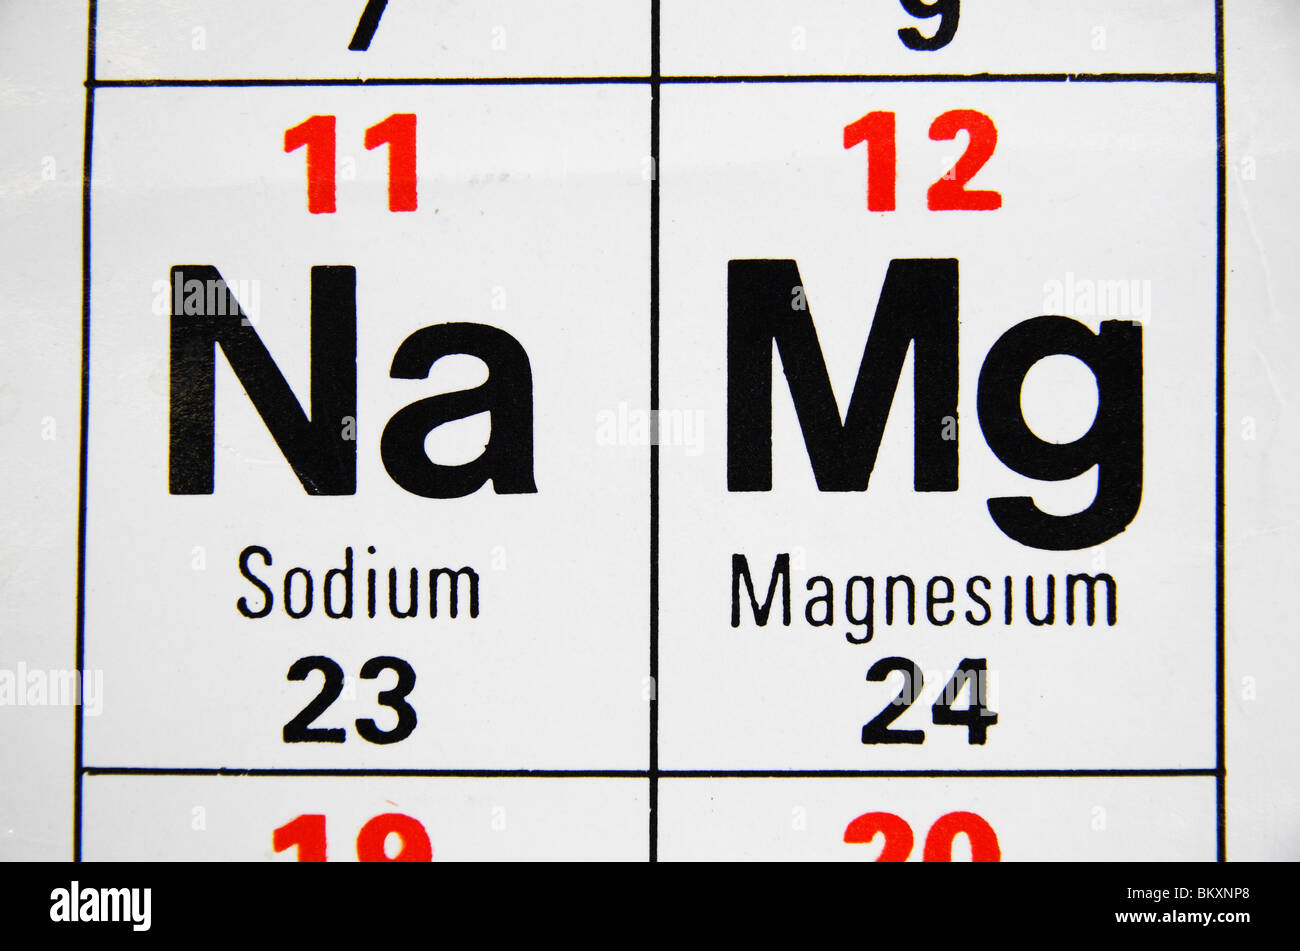 Alkaline Earth Metals Stock Photos Alkaline Earth Metals Stock